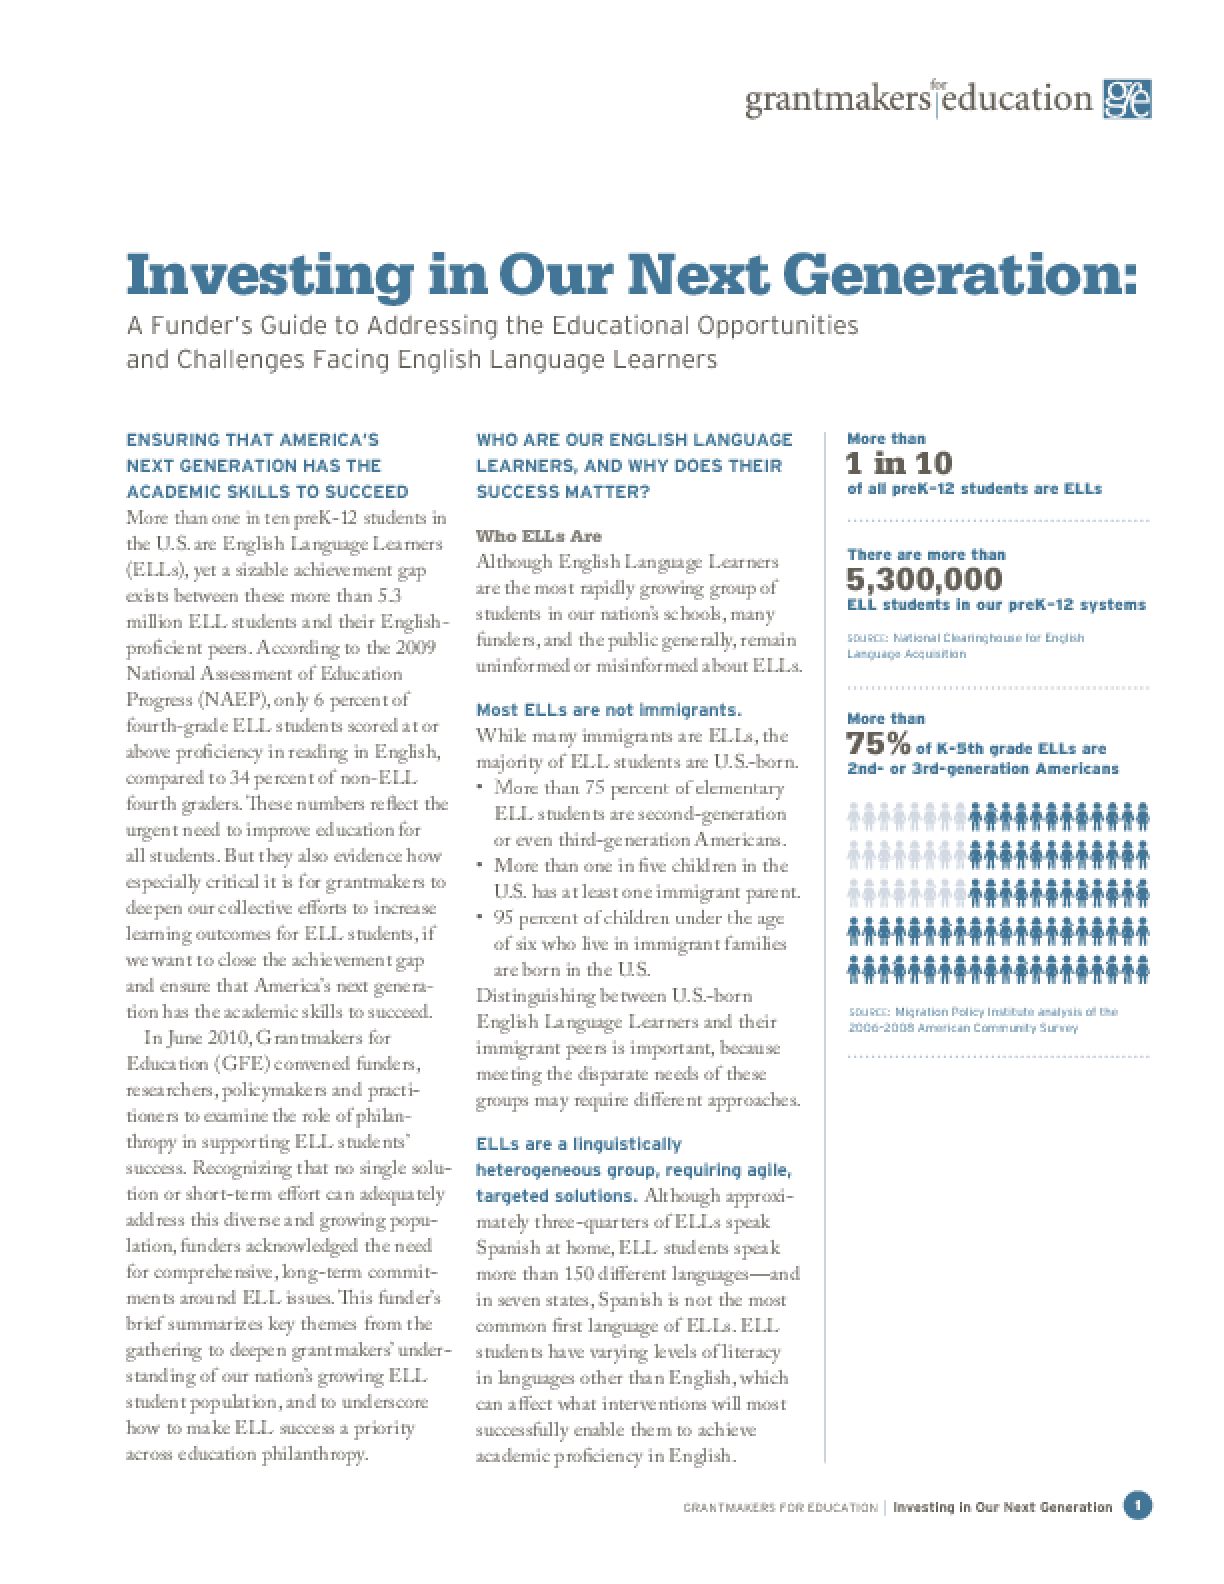 Investing in Our Next Generation: A Funder's Guide to Addressing the Educational Opportunities and Challenges Facing English Language Learners